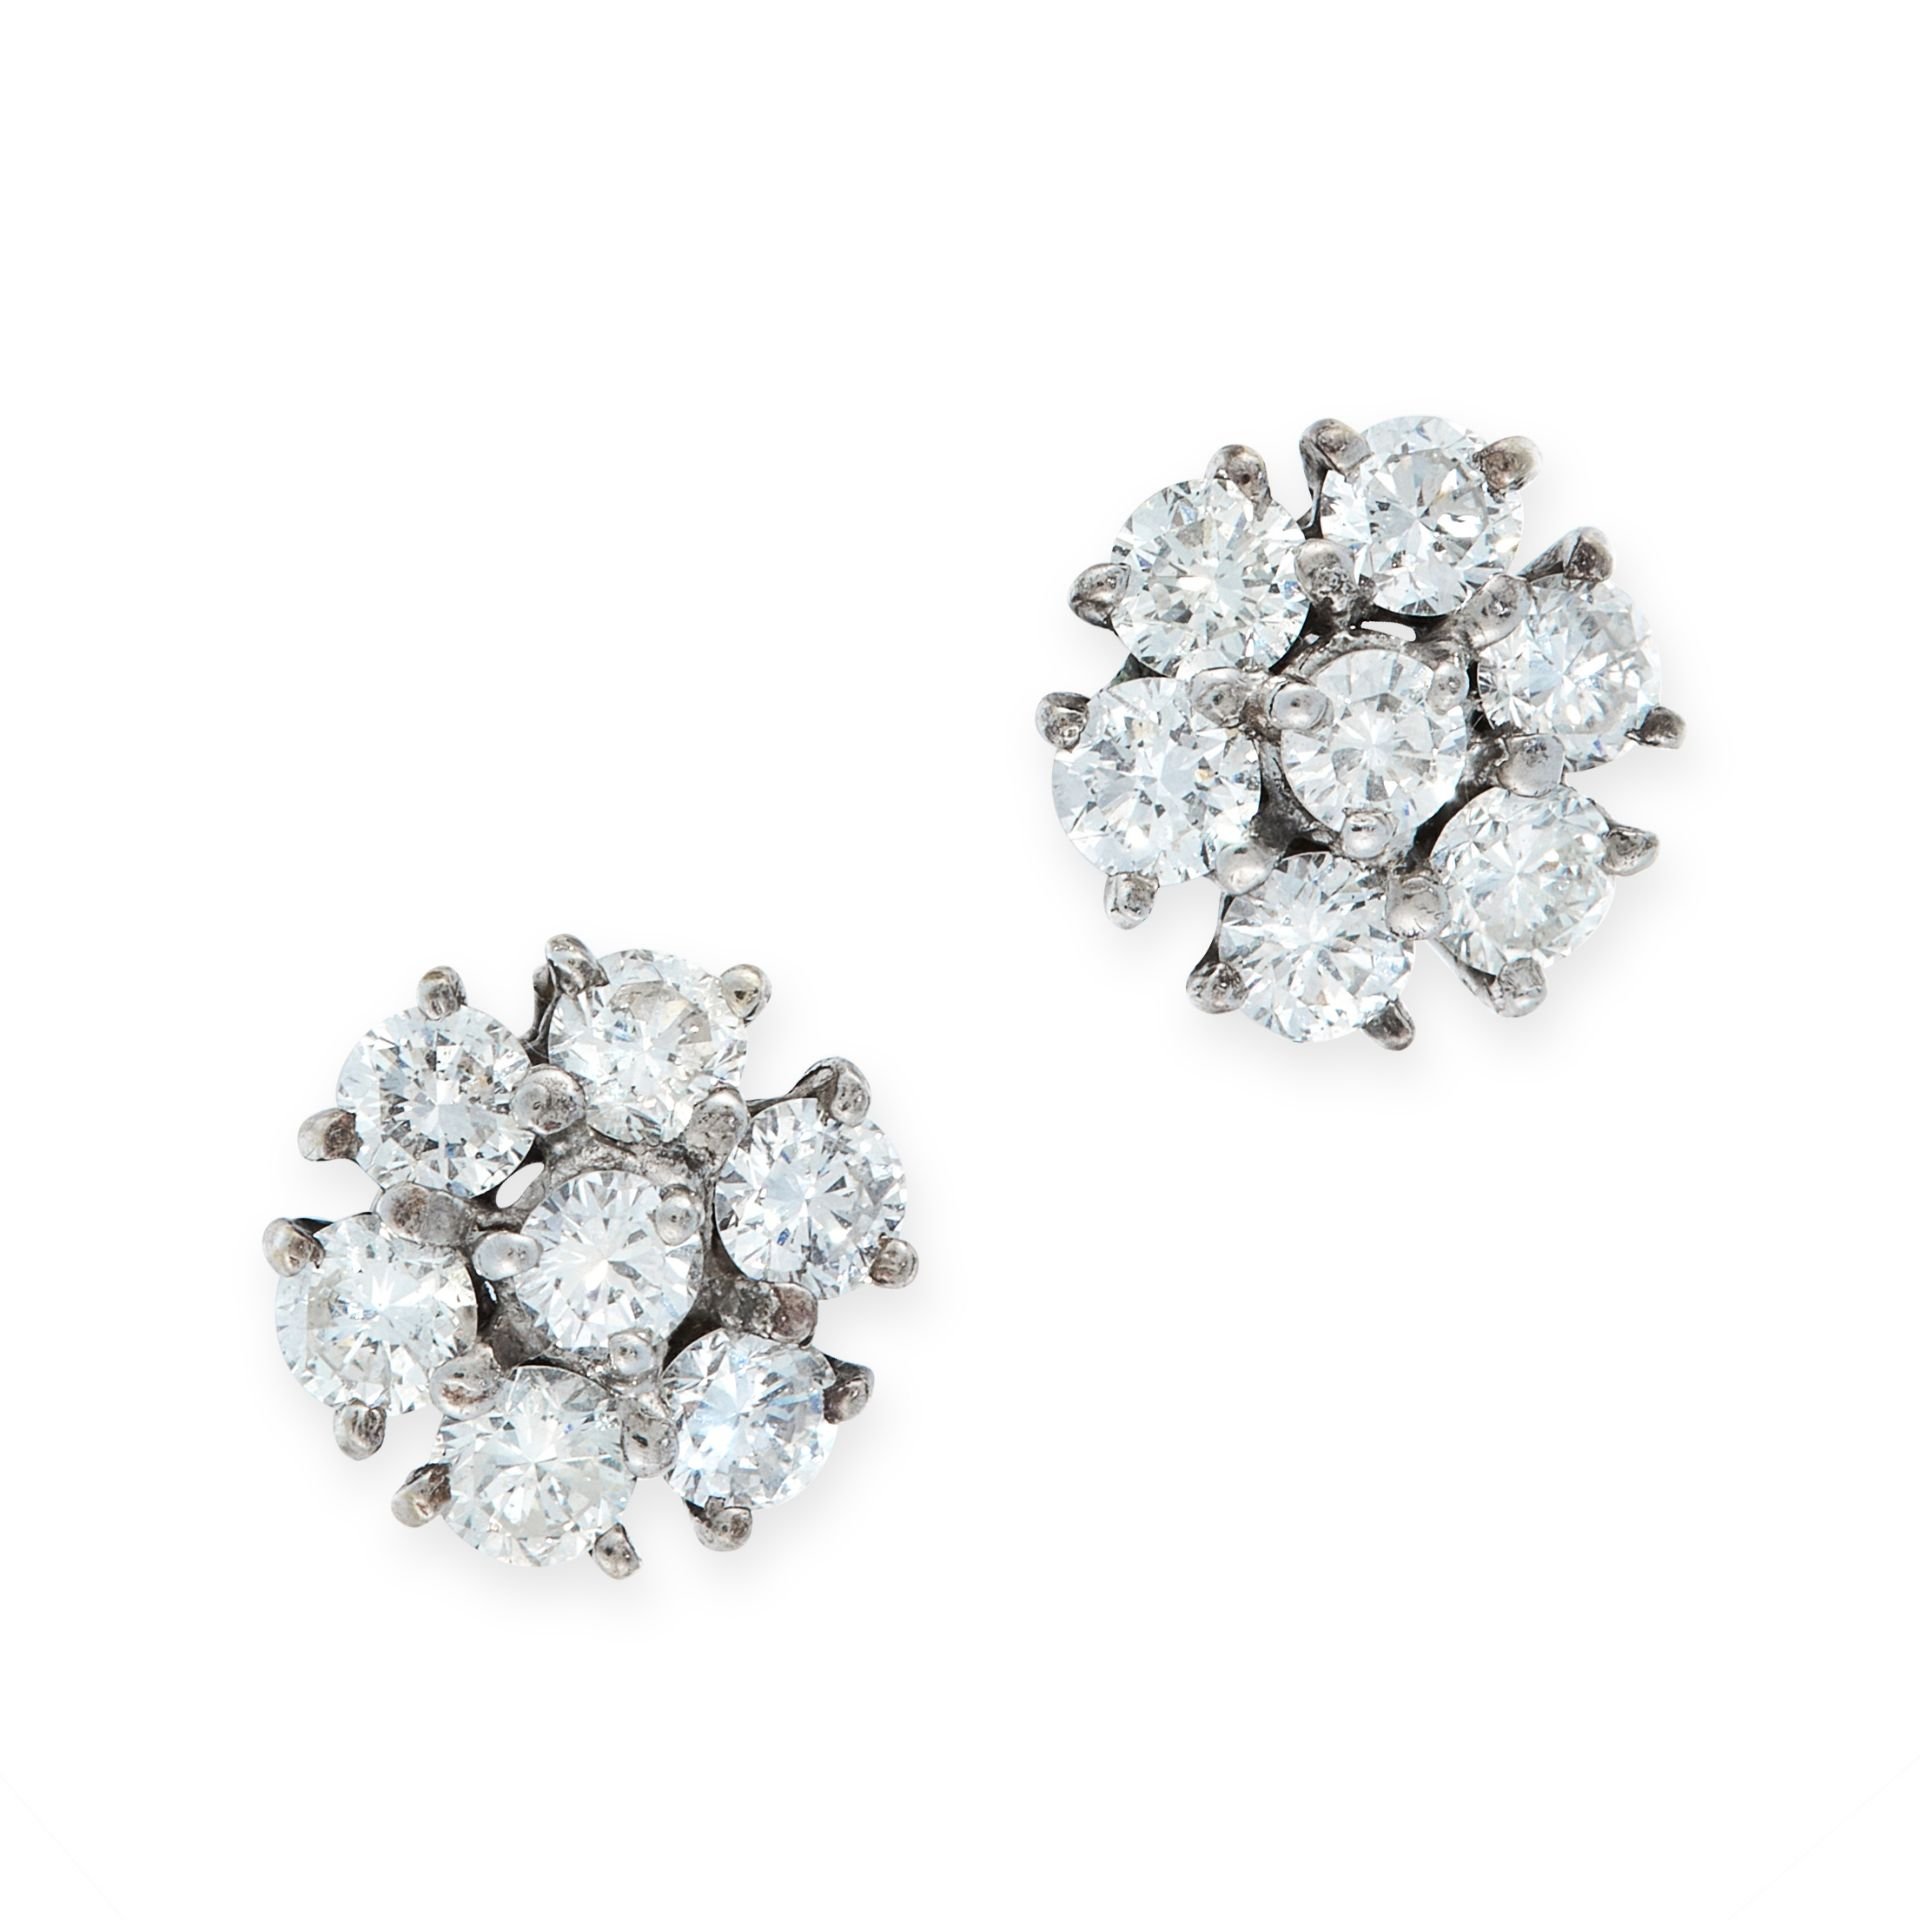 A PAIR OF DIAMOND CLUSTER STUD EARRINGS in 18ct white gold, each set with a cluster of seven round